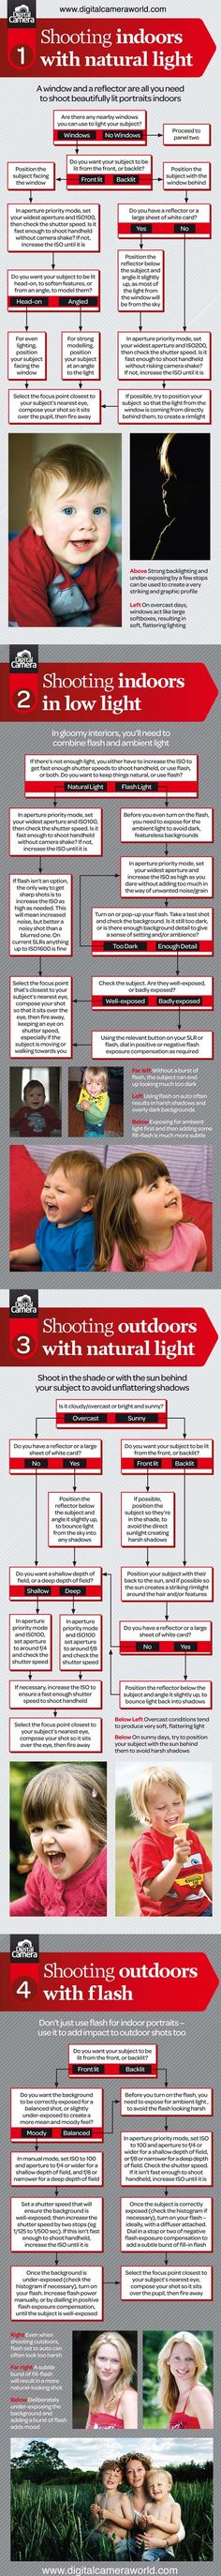 Shooting Indoors, Outdoors with Natural light or Flash cheat sheet